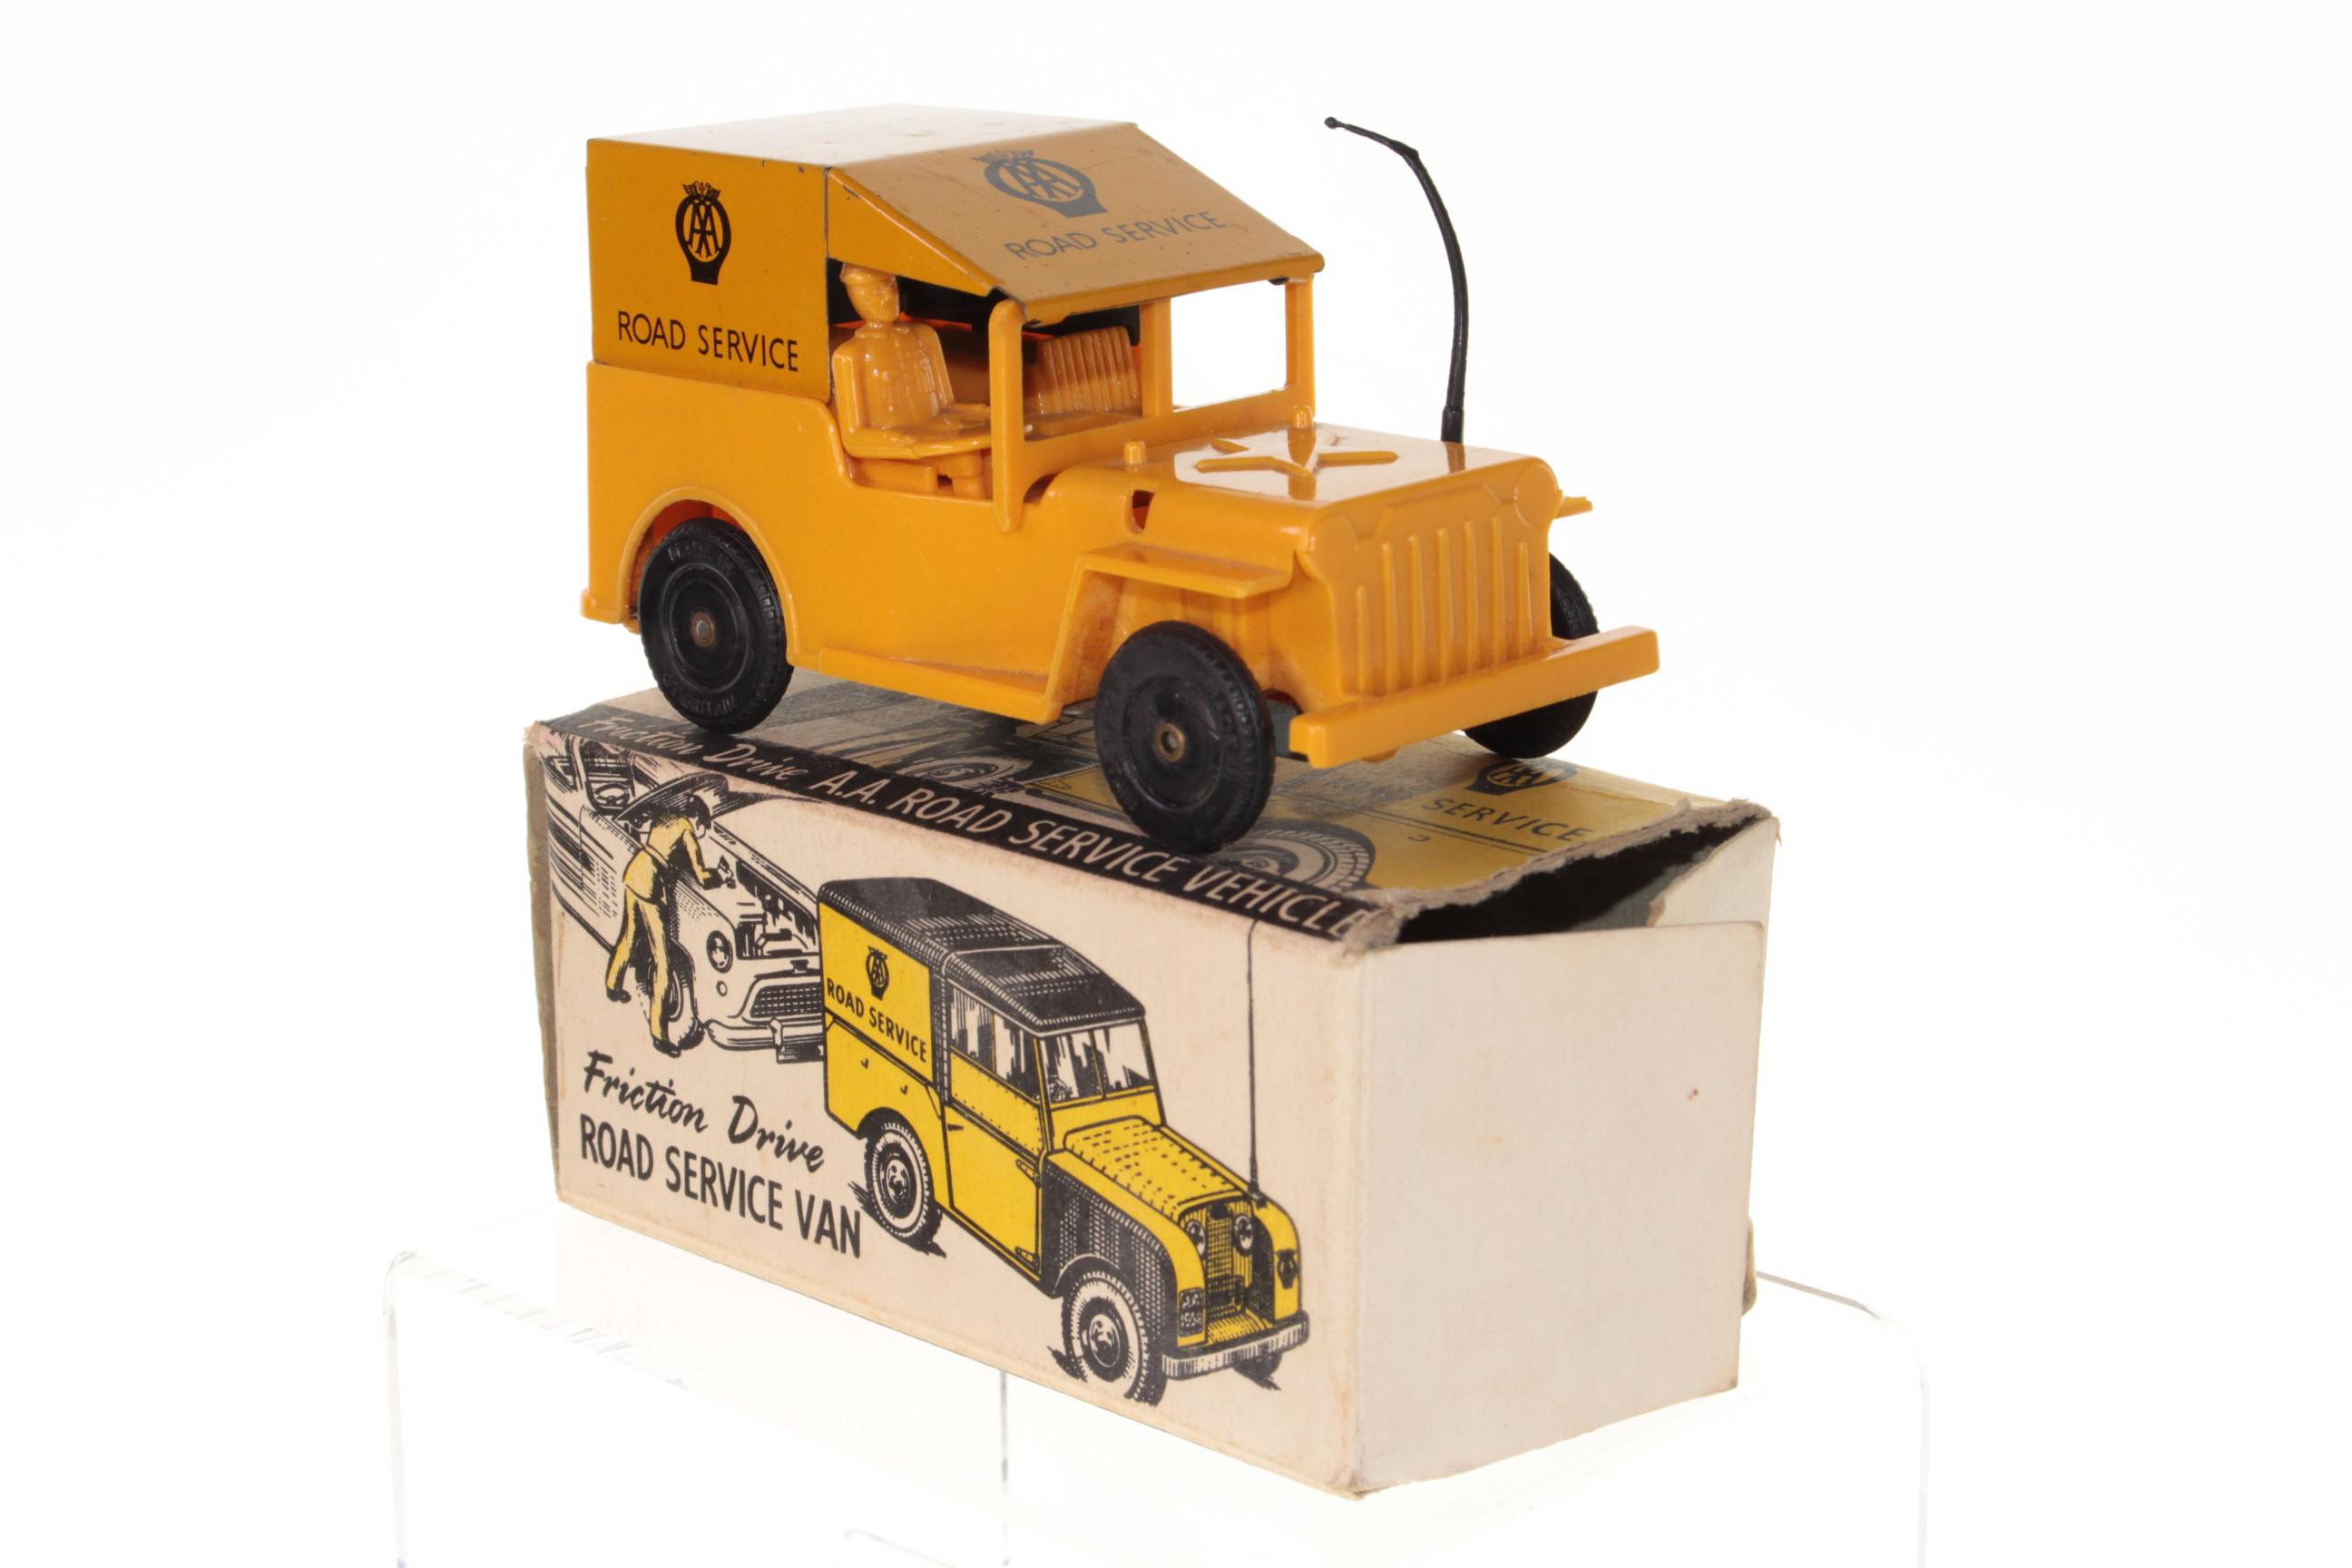 Picture Gallery for Mettoy 710 AA Road Service Vehicle